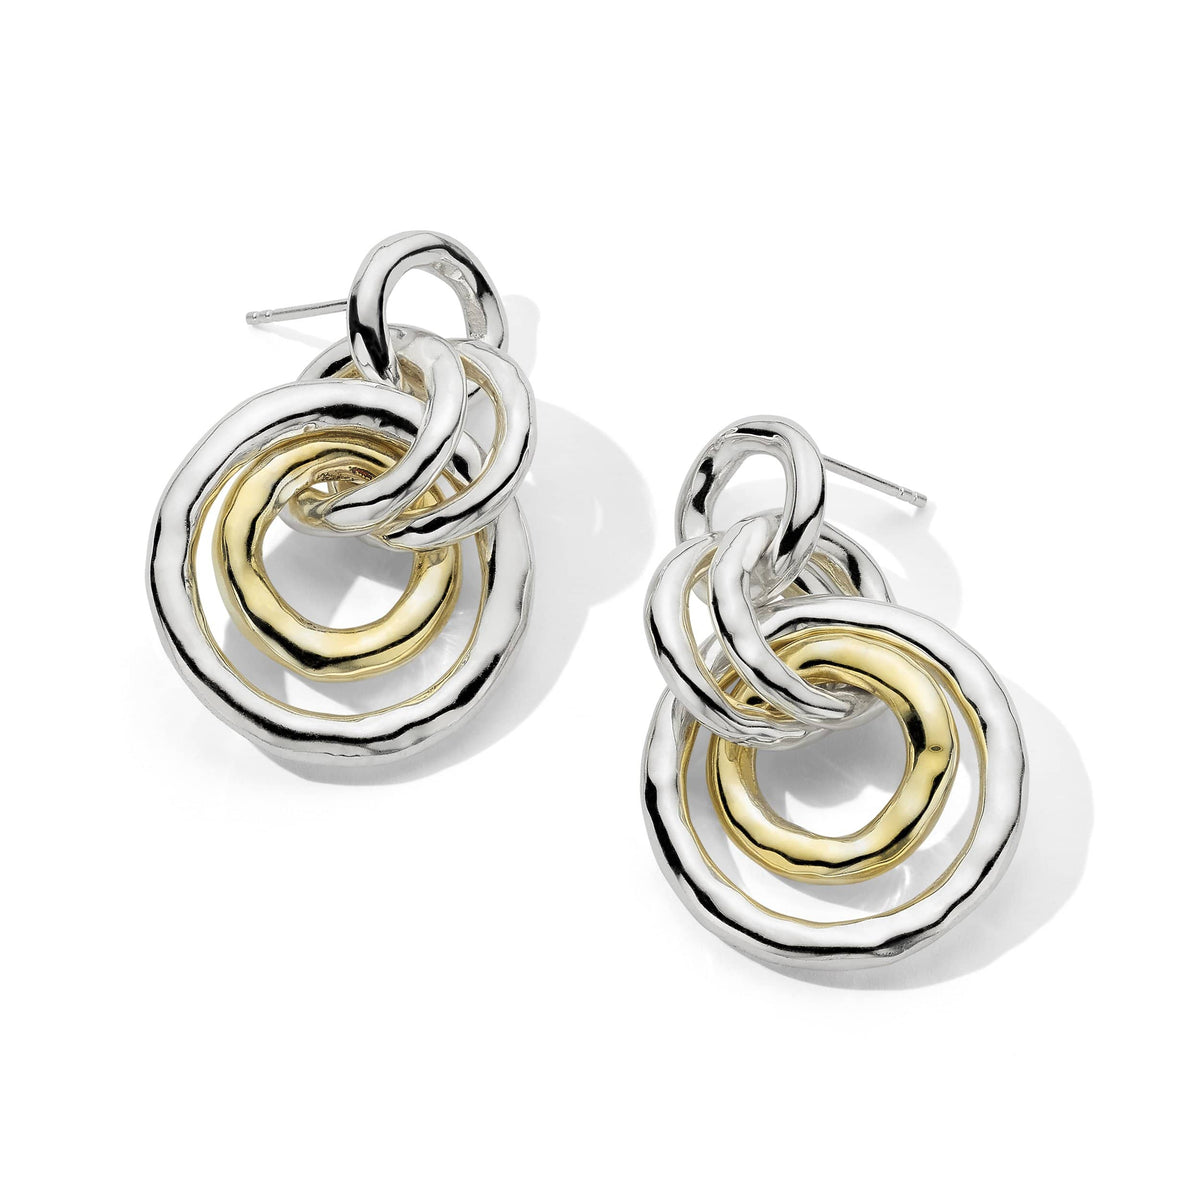 Chimera Classico Medium Jet Set Post Earrings